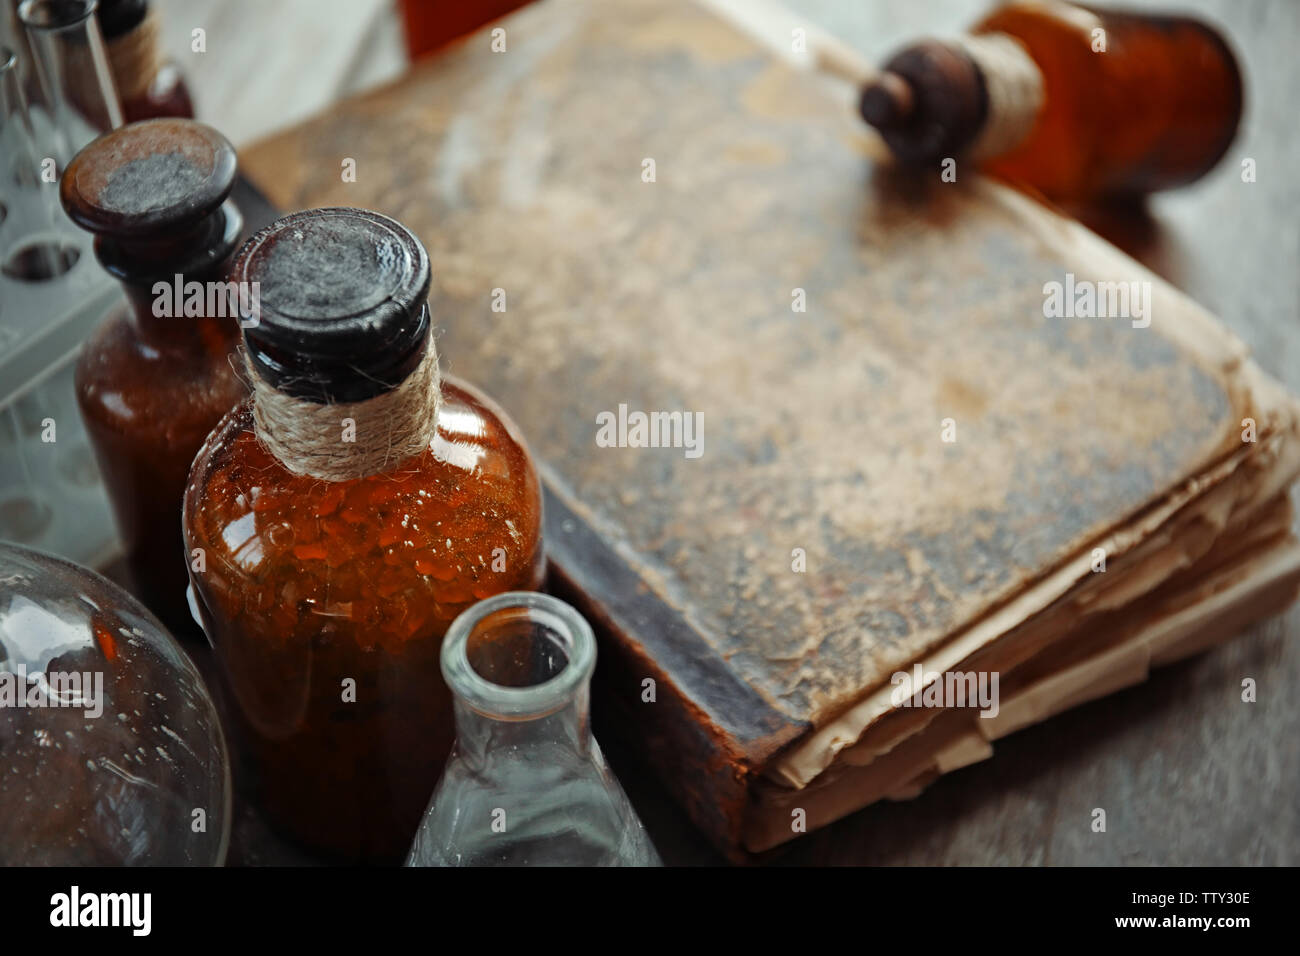 Old book with glass bottles, closeup - Stock Image